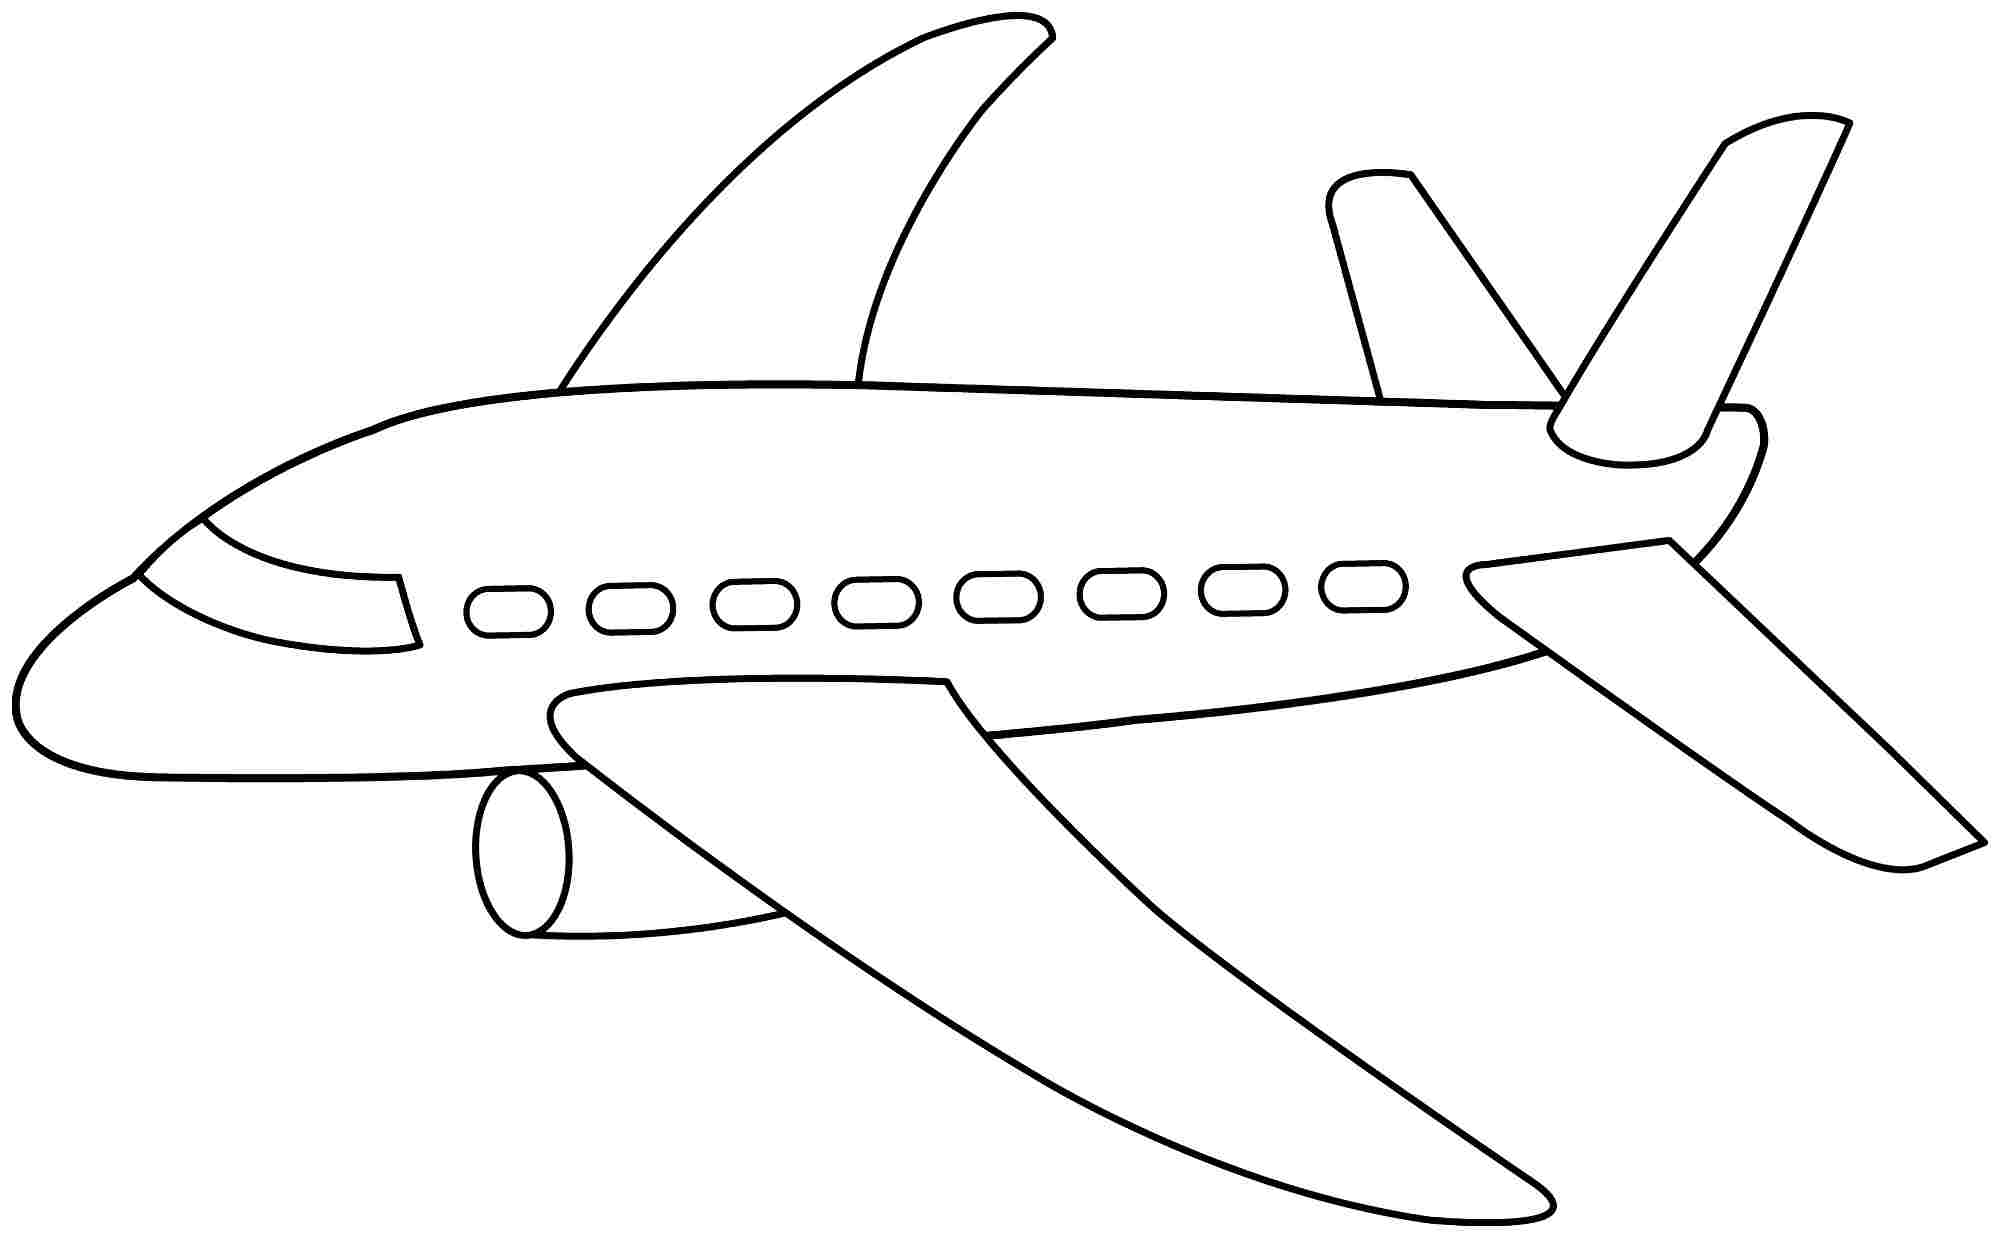 plane coloring pages - planes coloring pages